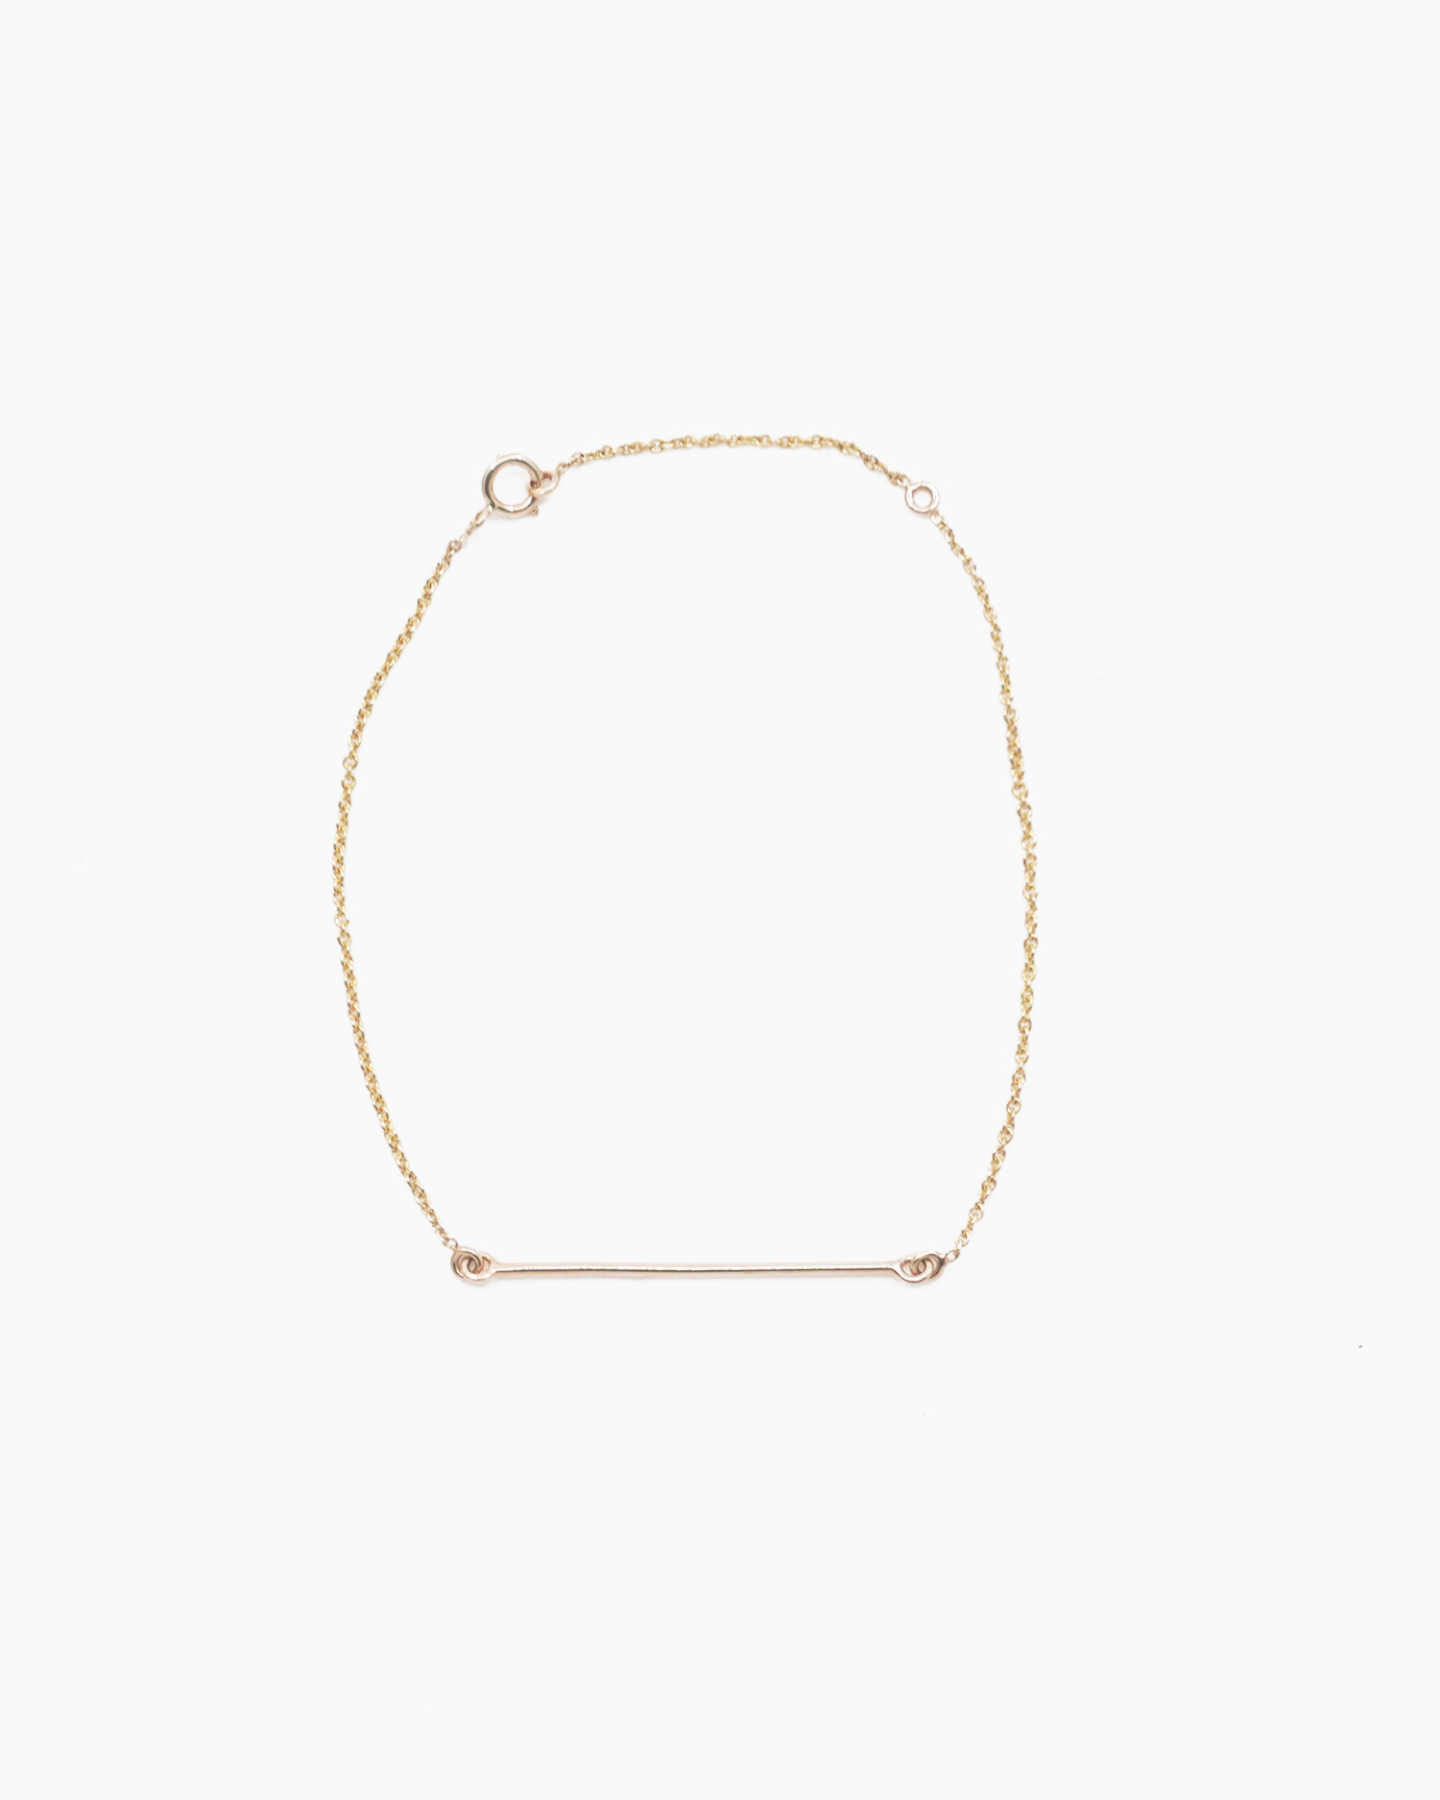 Gold Lariat Bracelet - Yellow Gold